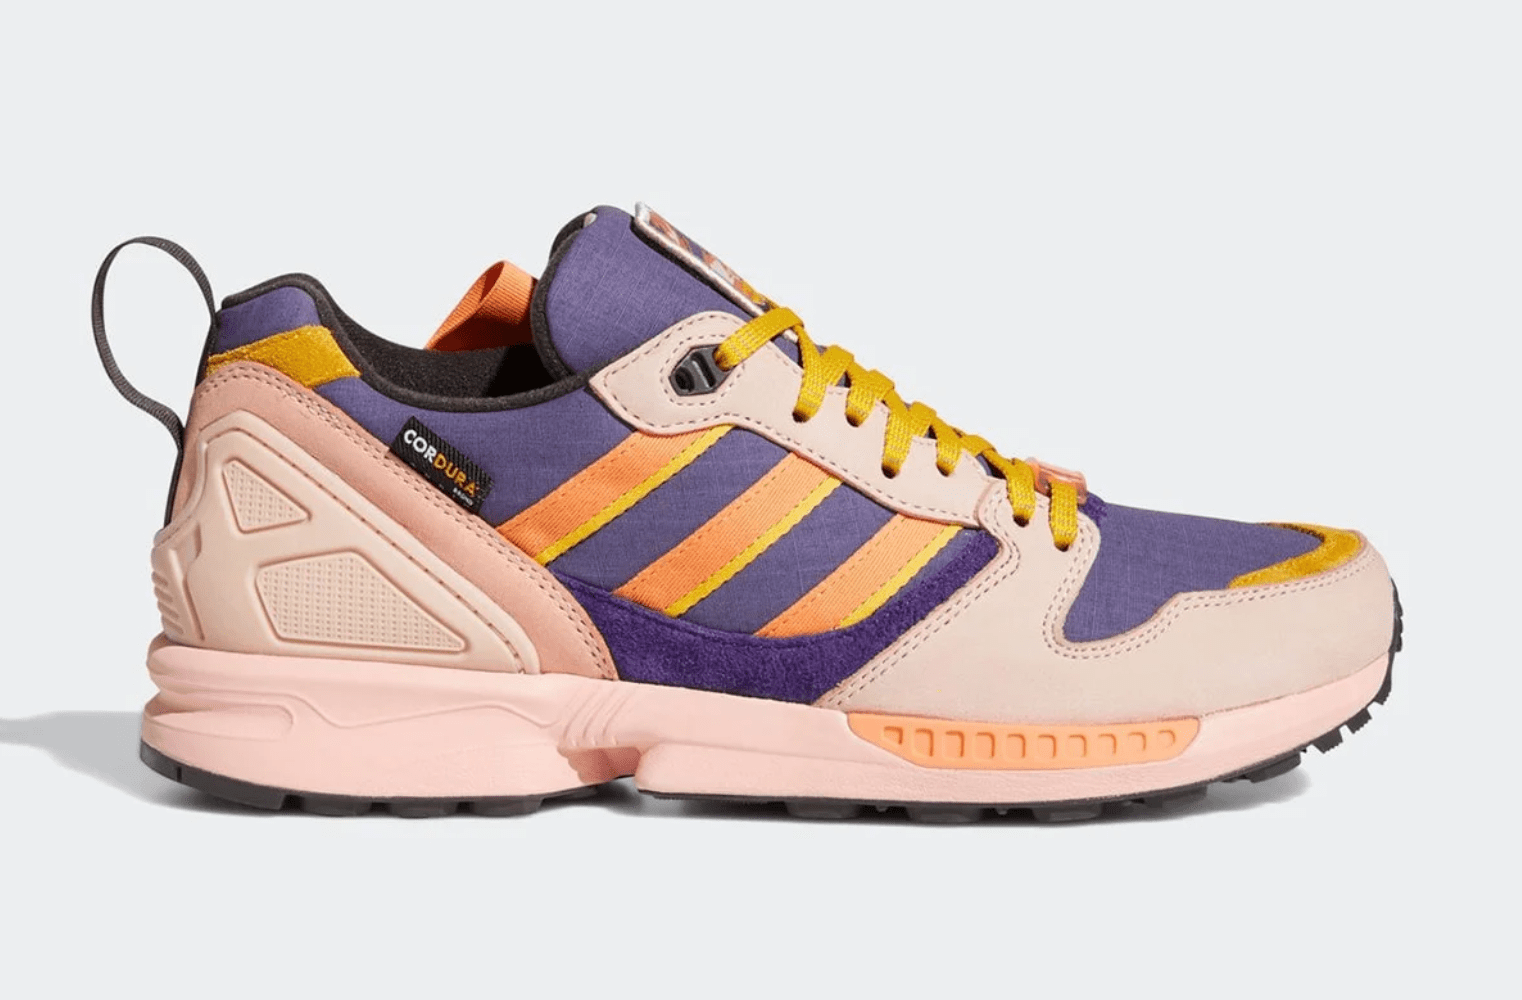 National Park Foundation x adidas ZX 5000 'Joshua Tree'